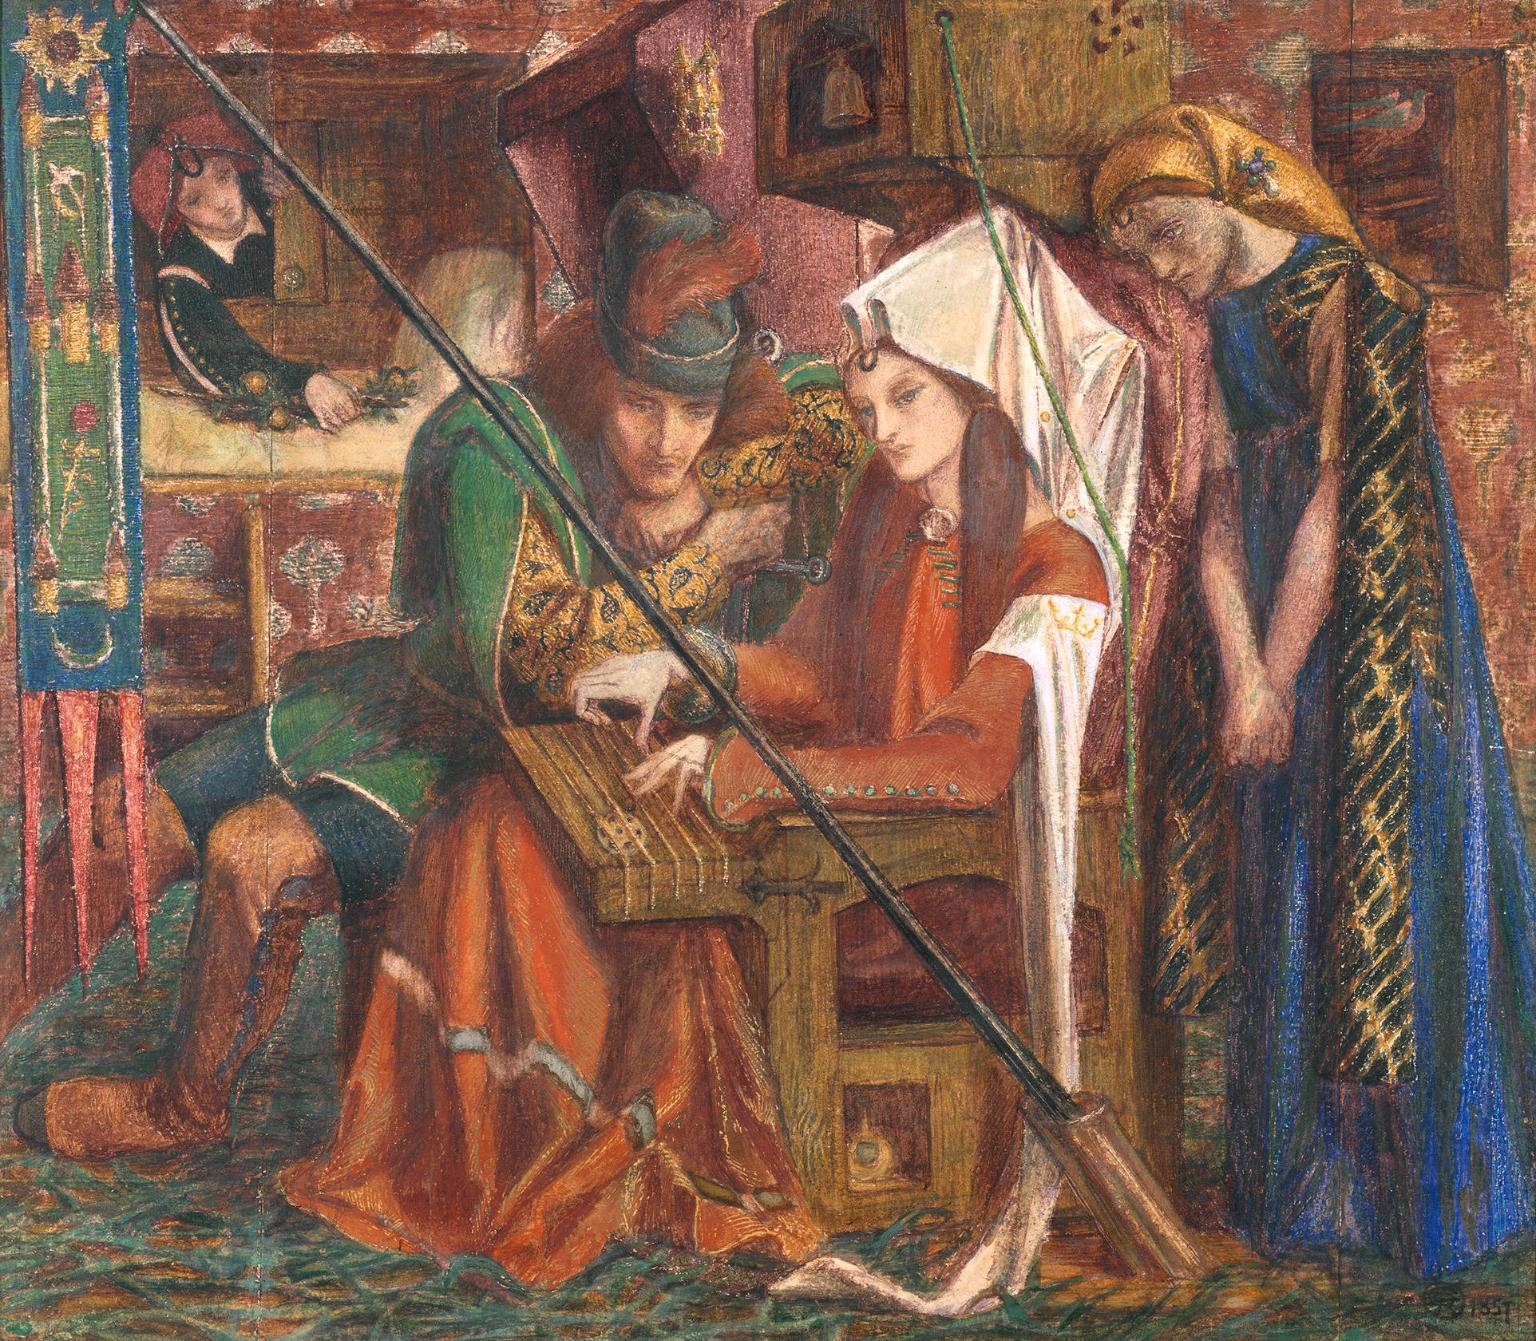 https://i0.wp.com/upload.wikimedia.org/wikipedia/commons/4/44/Dante_Gabriel_Rossetti_The_Tune_of_Seven_Towers.jpg